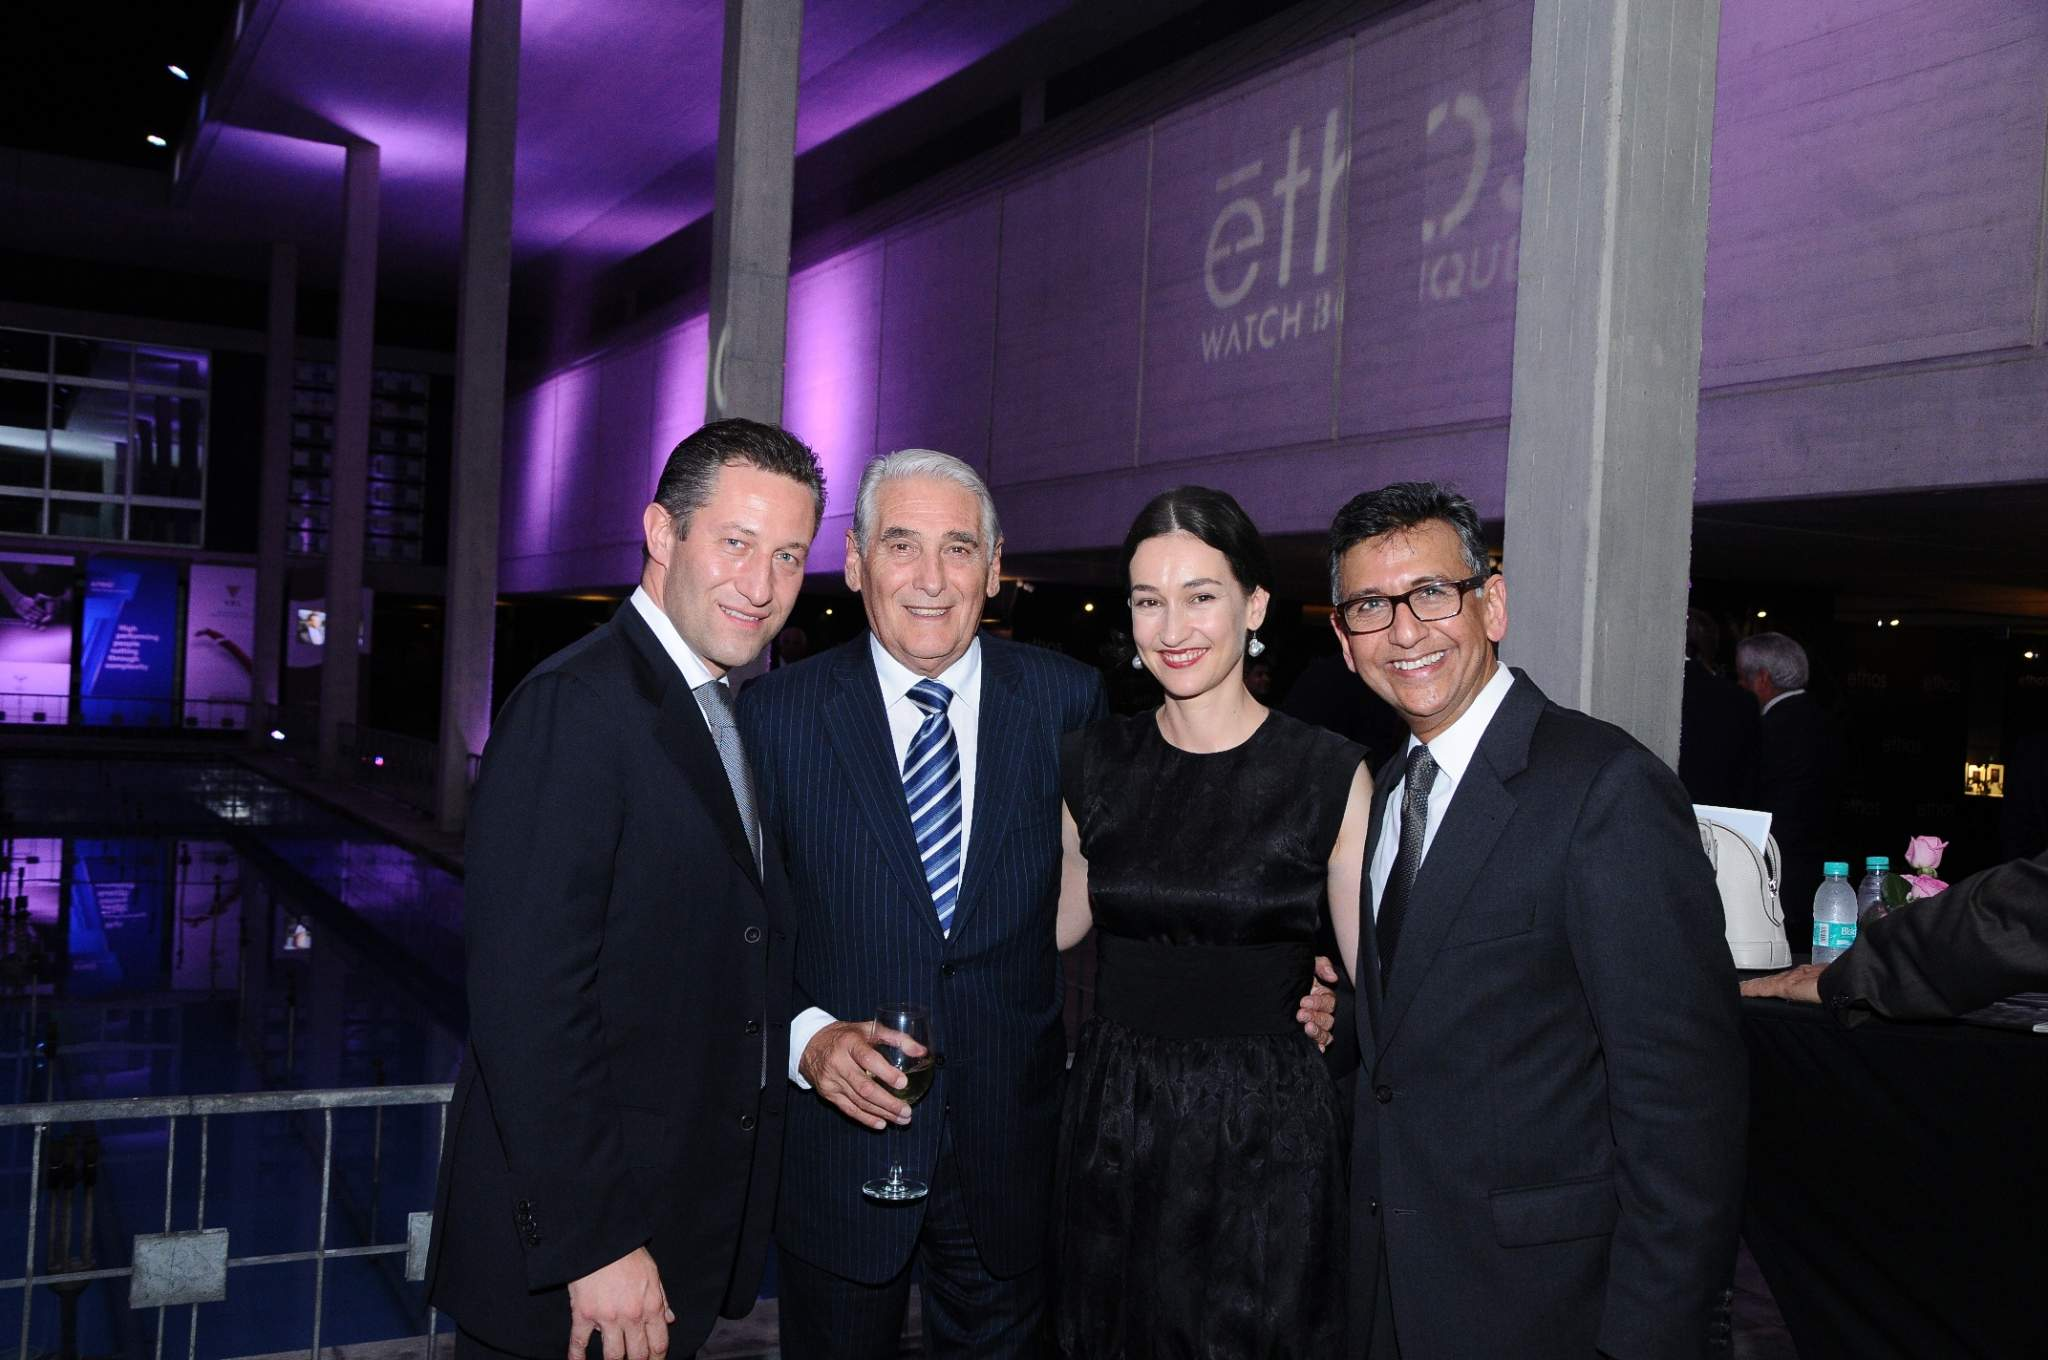 Aurel Bacs (President of the jury of the GPHG), Carlo Lamprecht (President of the Foundation of the GPHG), Carine Maillard (Director of the Foundation of the GPHG) and Yasho Saboo (Ethos Watches) at the inauguration of the GPHG 2014 exhibition in New Delhi